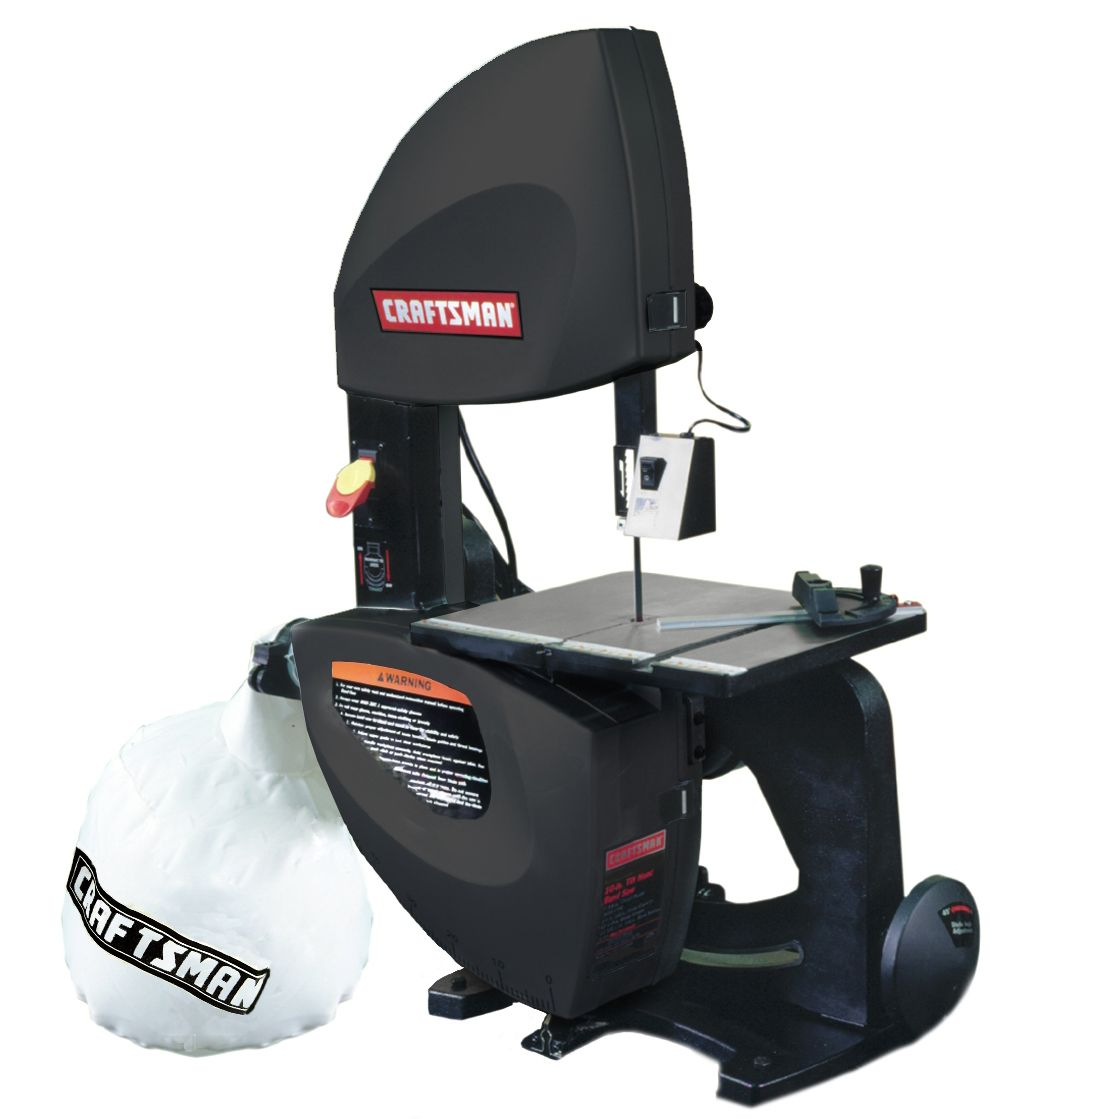 Craftsman 10 In. Tilting Head Band With Dust Collector